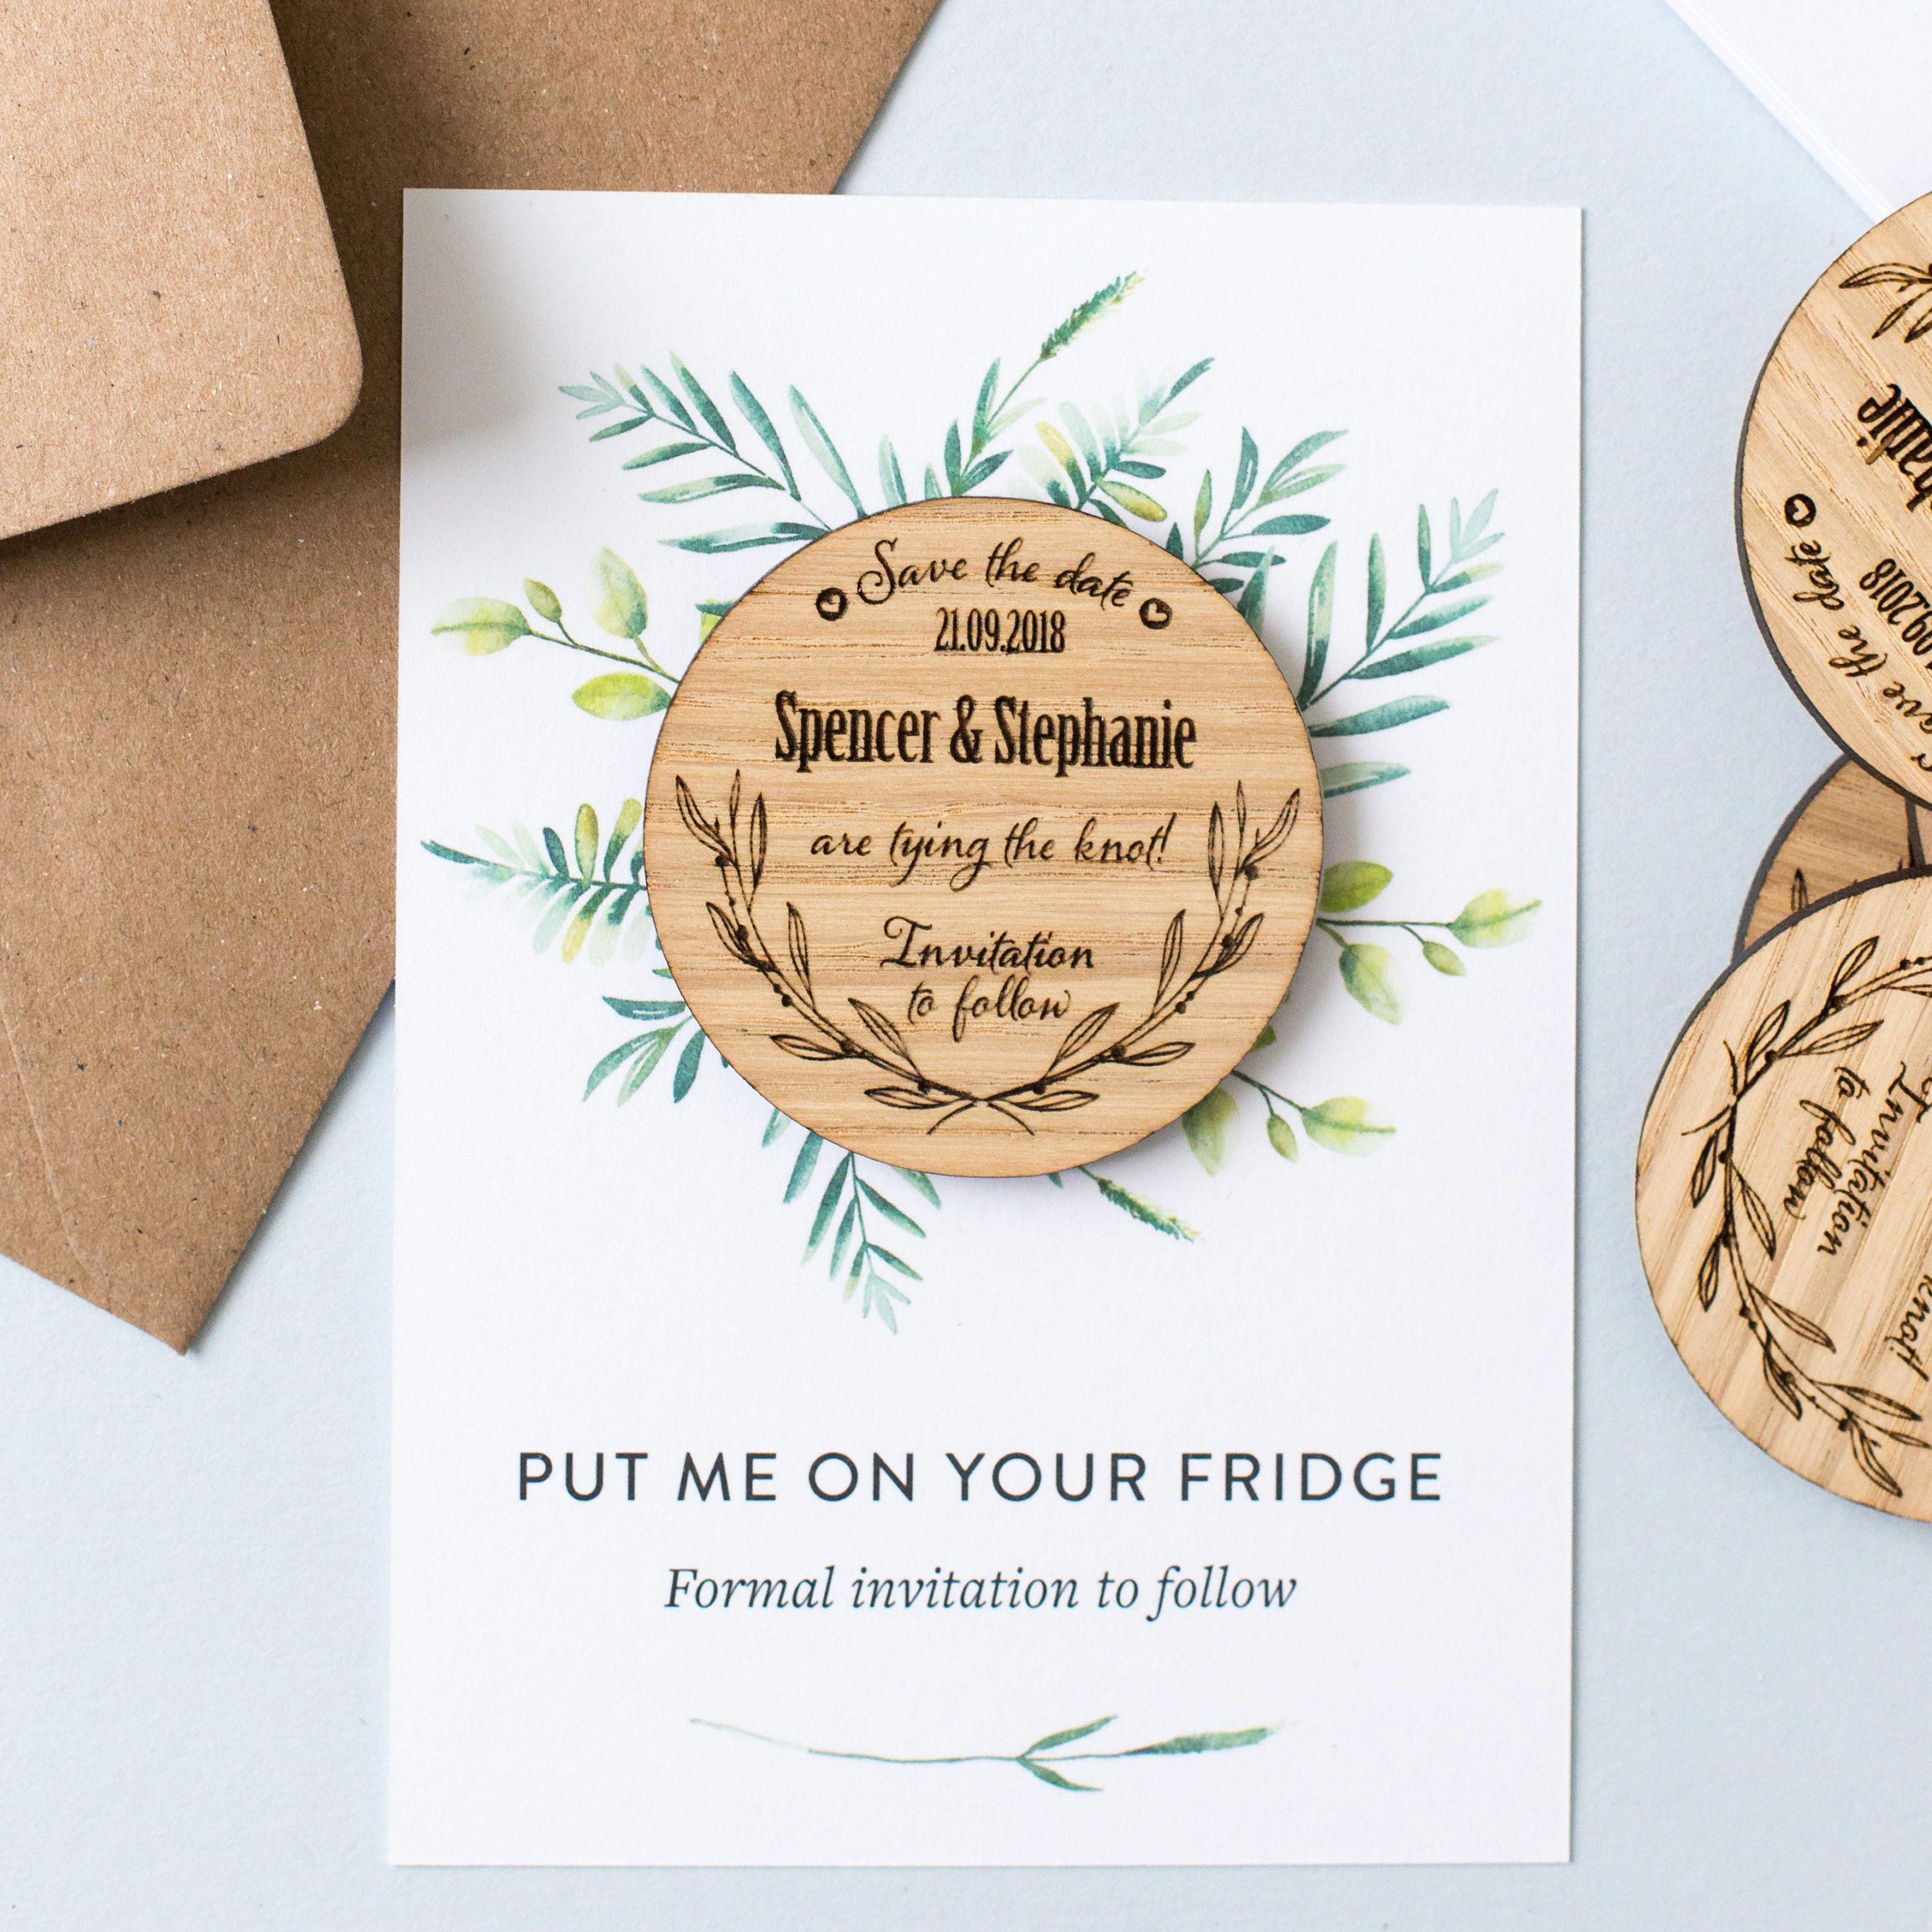 38 Unique and Unusual Save the Date Ideas